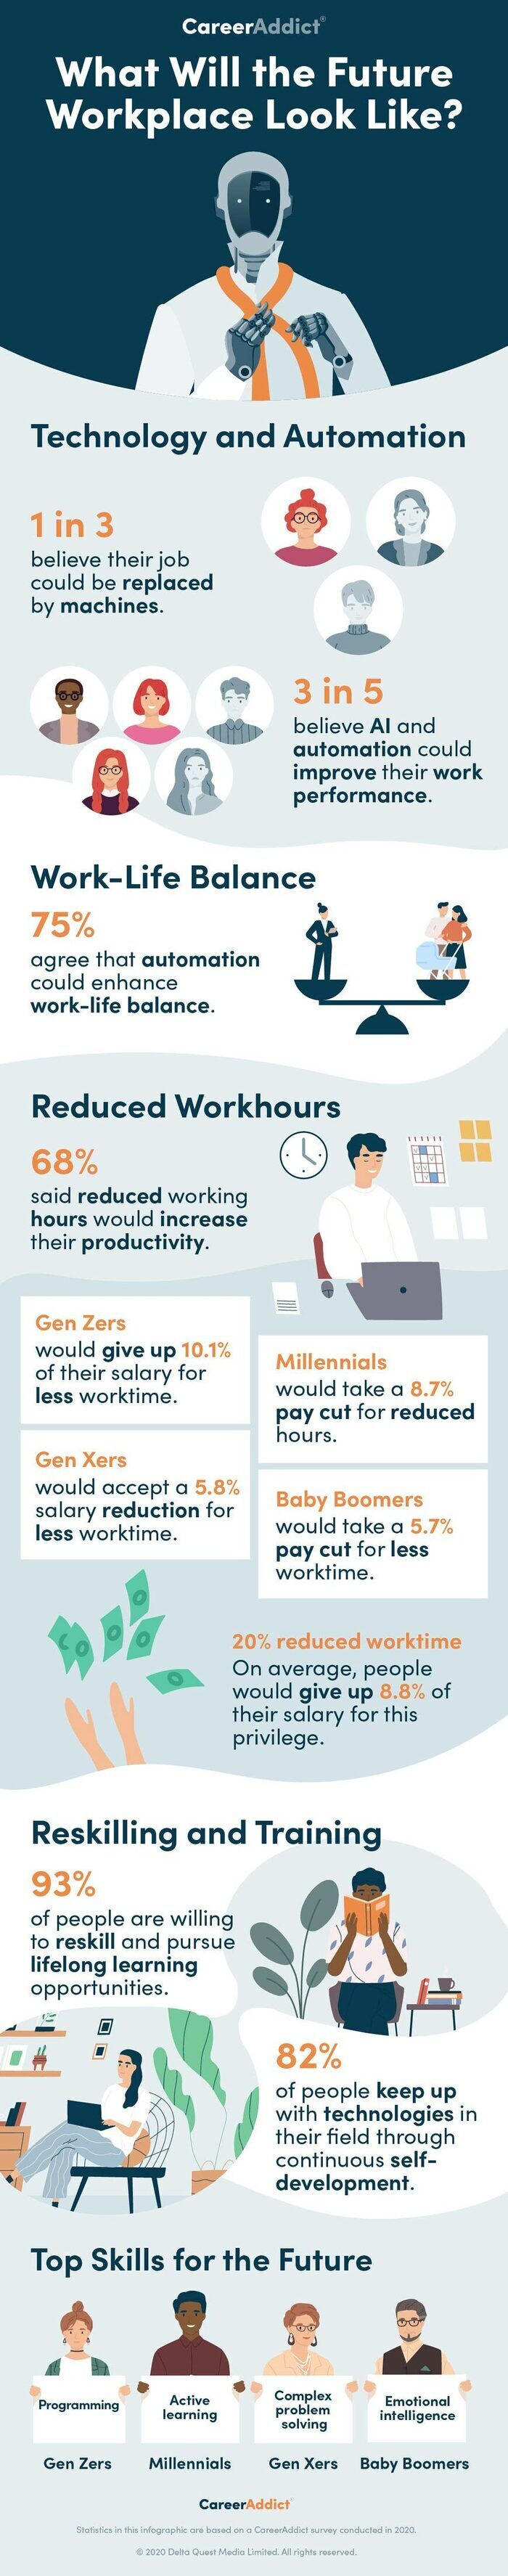 Infographic showing results of the Career Addict survey.